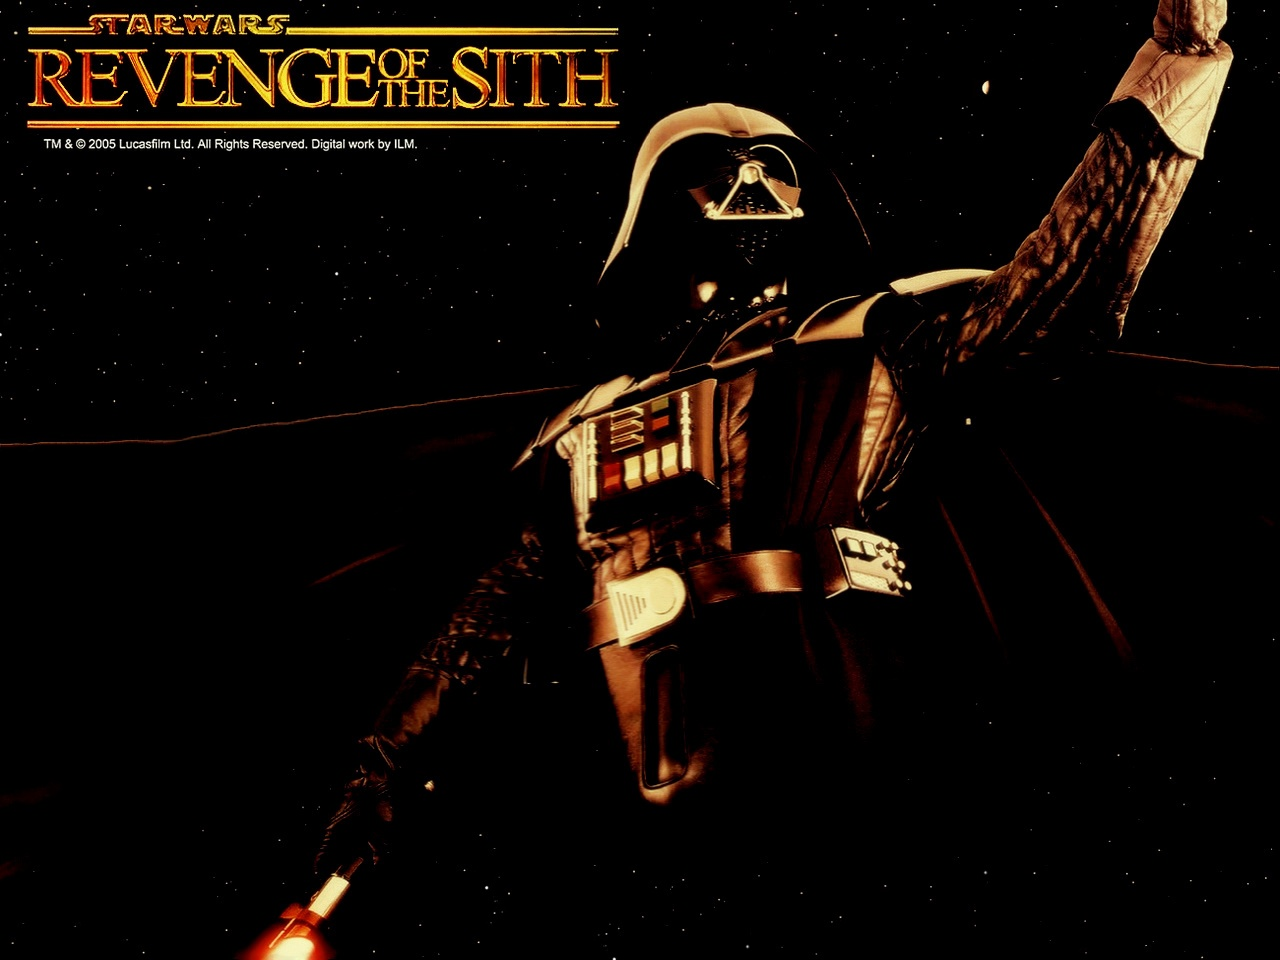 Revenge of the Sith (Ep. III) - Vader